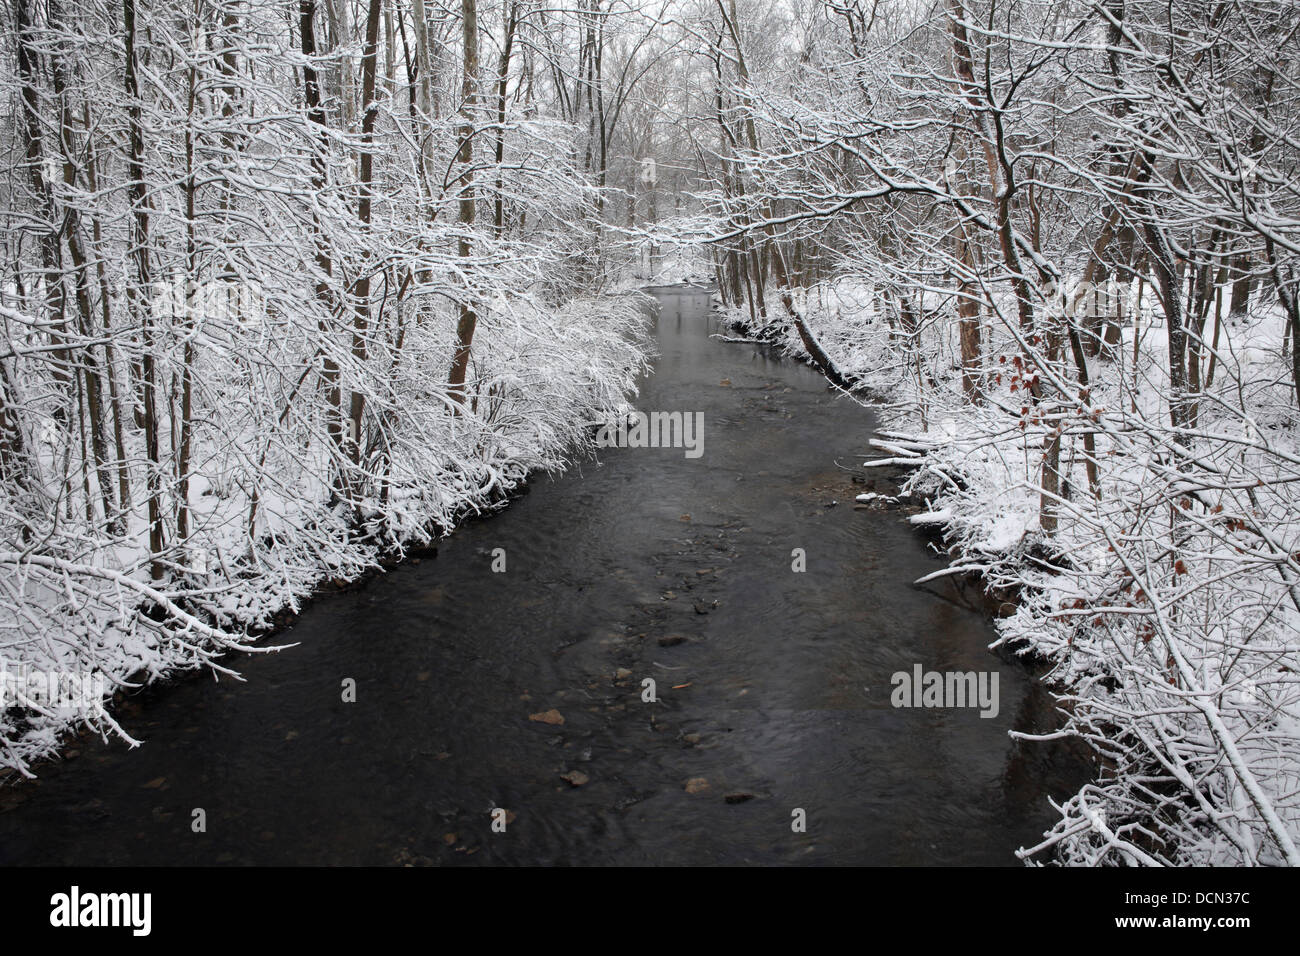 Snow Covered Trees Framing A Little Stream During Winter In The Park, Sharon Creek At Sharon Woods, Southwestern Stock Photo